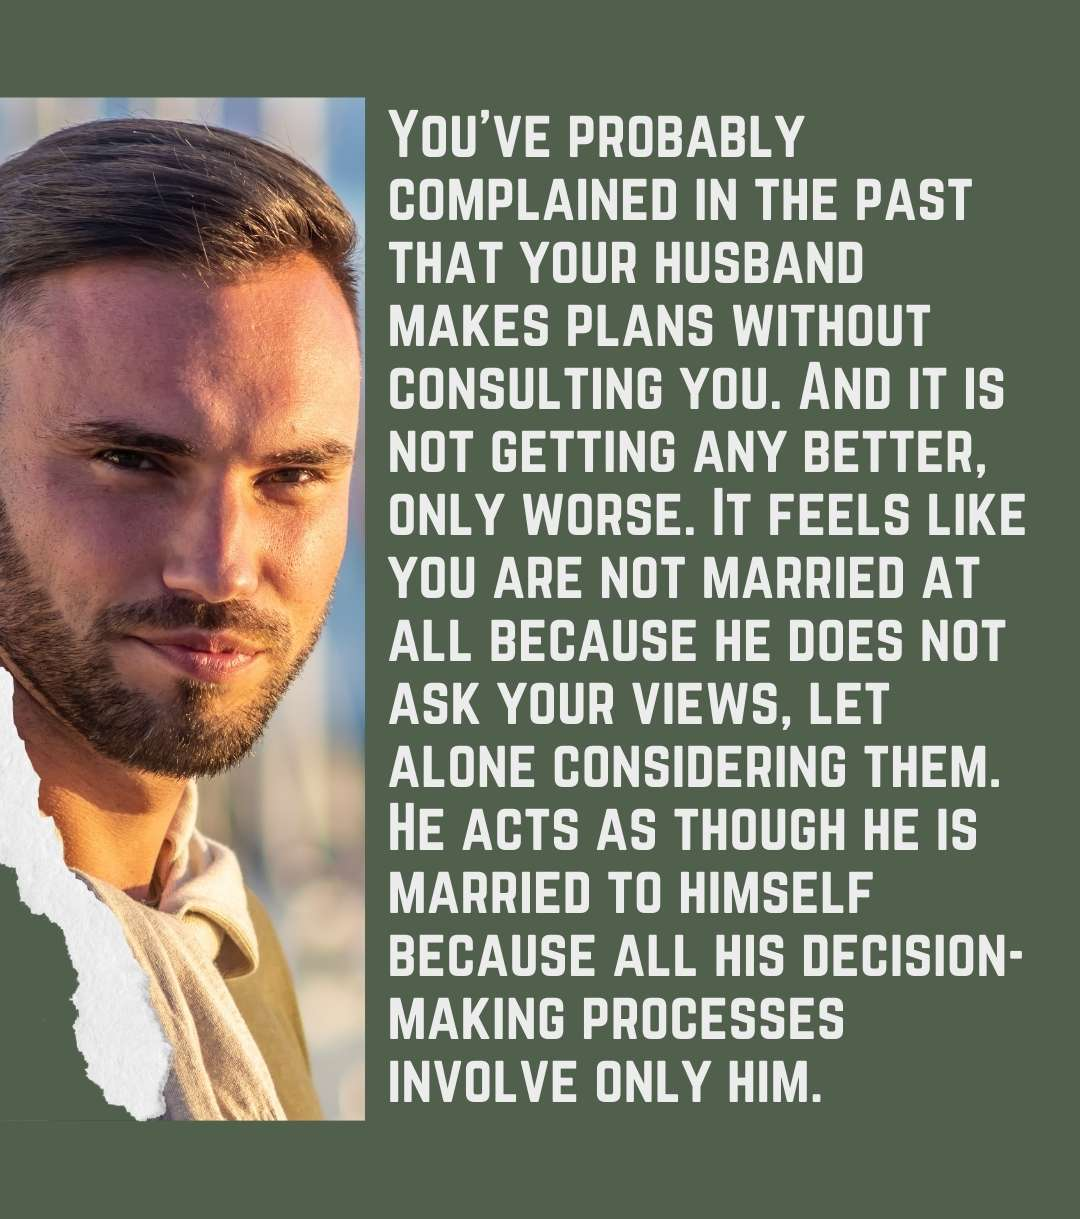 You've probably complained in the past that your husband makes plans without consulting you. And it is not getting any better, only worse. It feels like you are not married at all because he does not ask your views, let alone considering them. He acts as though he is married to himself because all his decision-making processes involve only him.